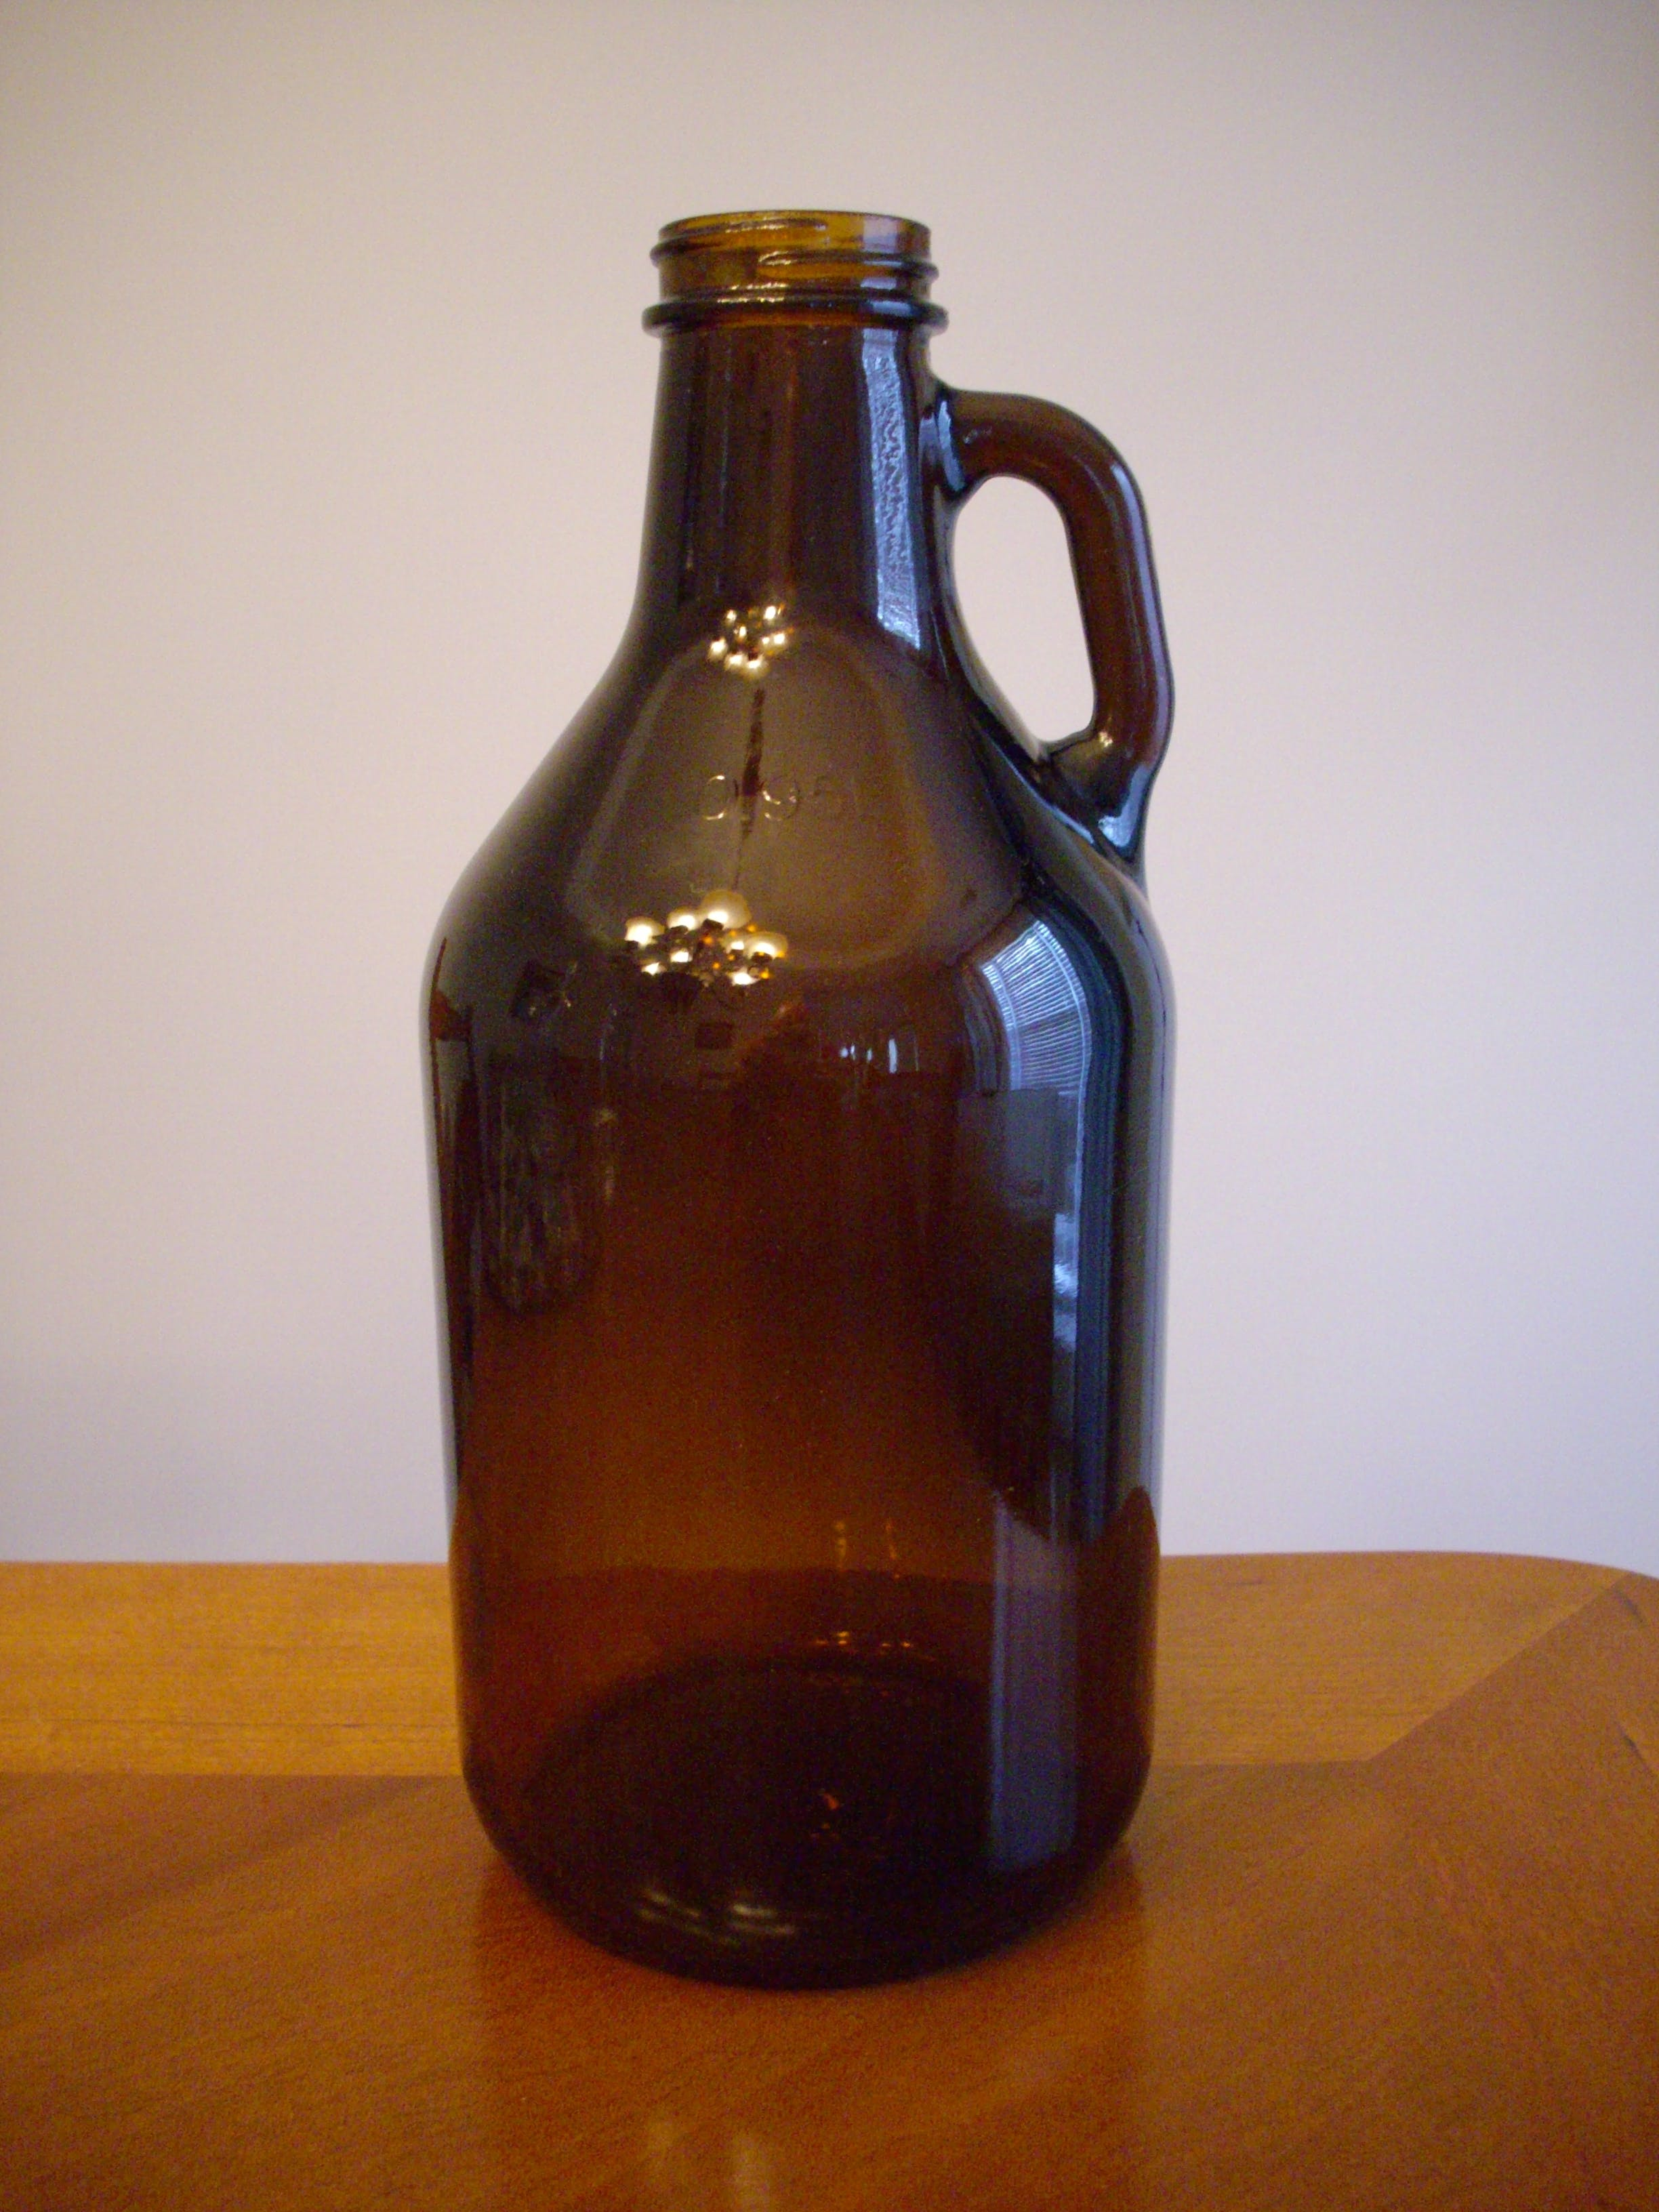 32 oz Amber Growler Growler sold by Wm. R. Hill & Company